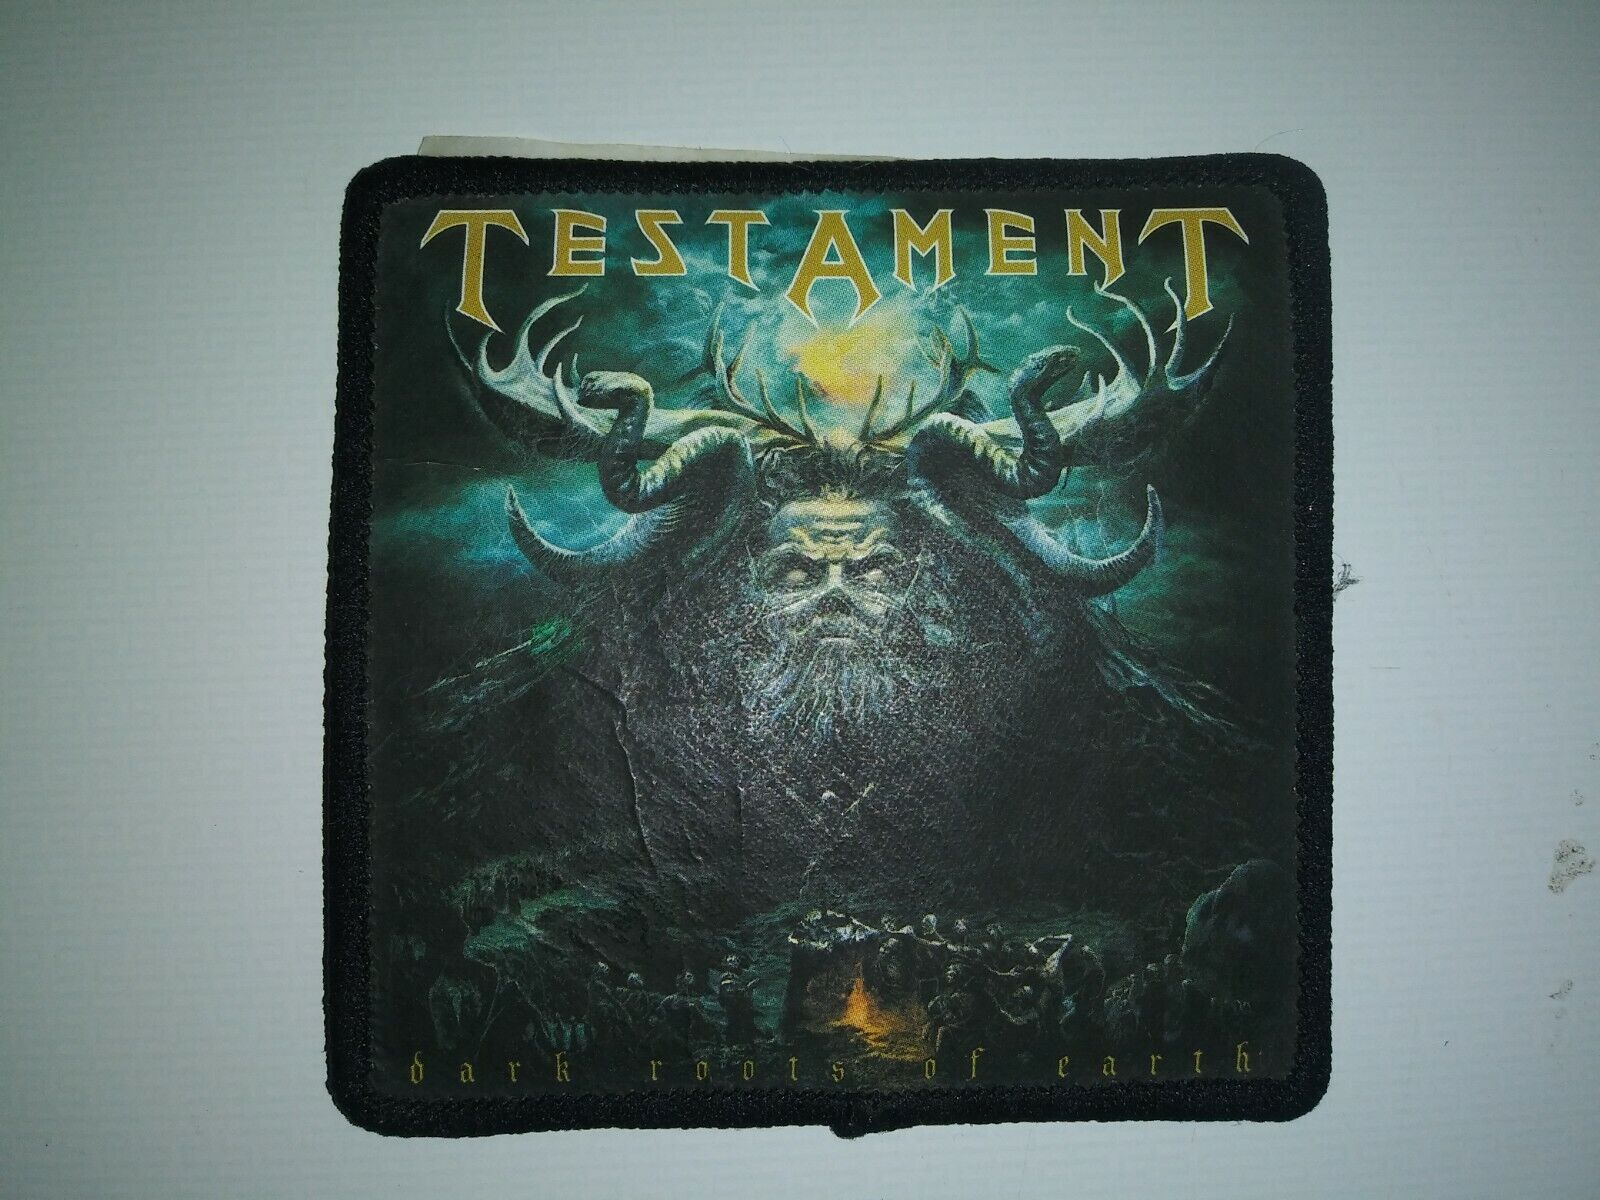 TESTAMENT DARK ROOTS OF EARTH PATCH  - $0.99